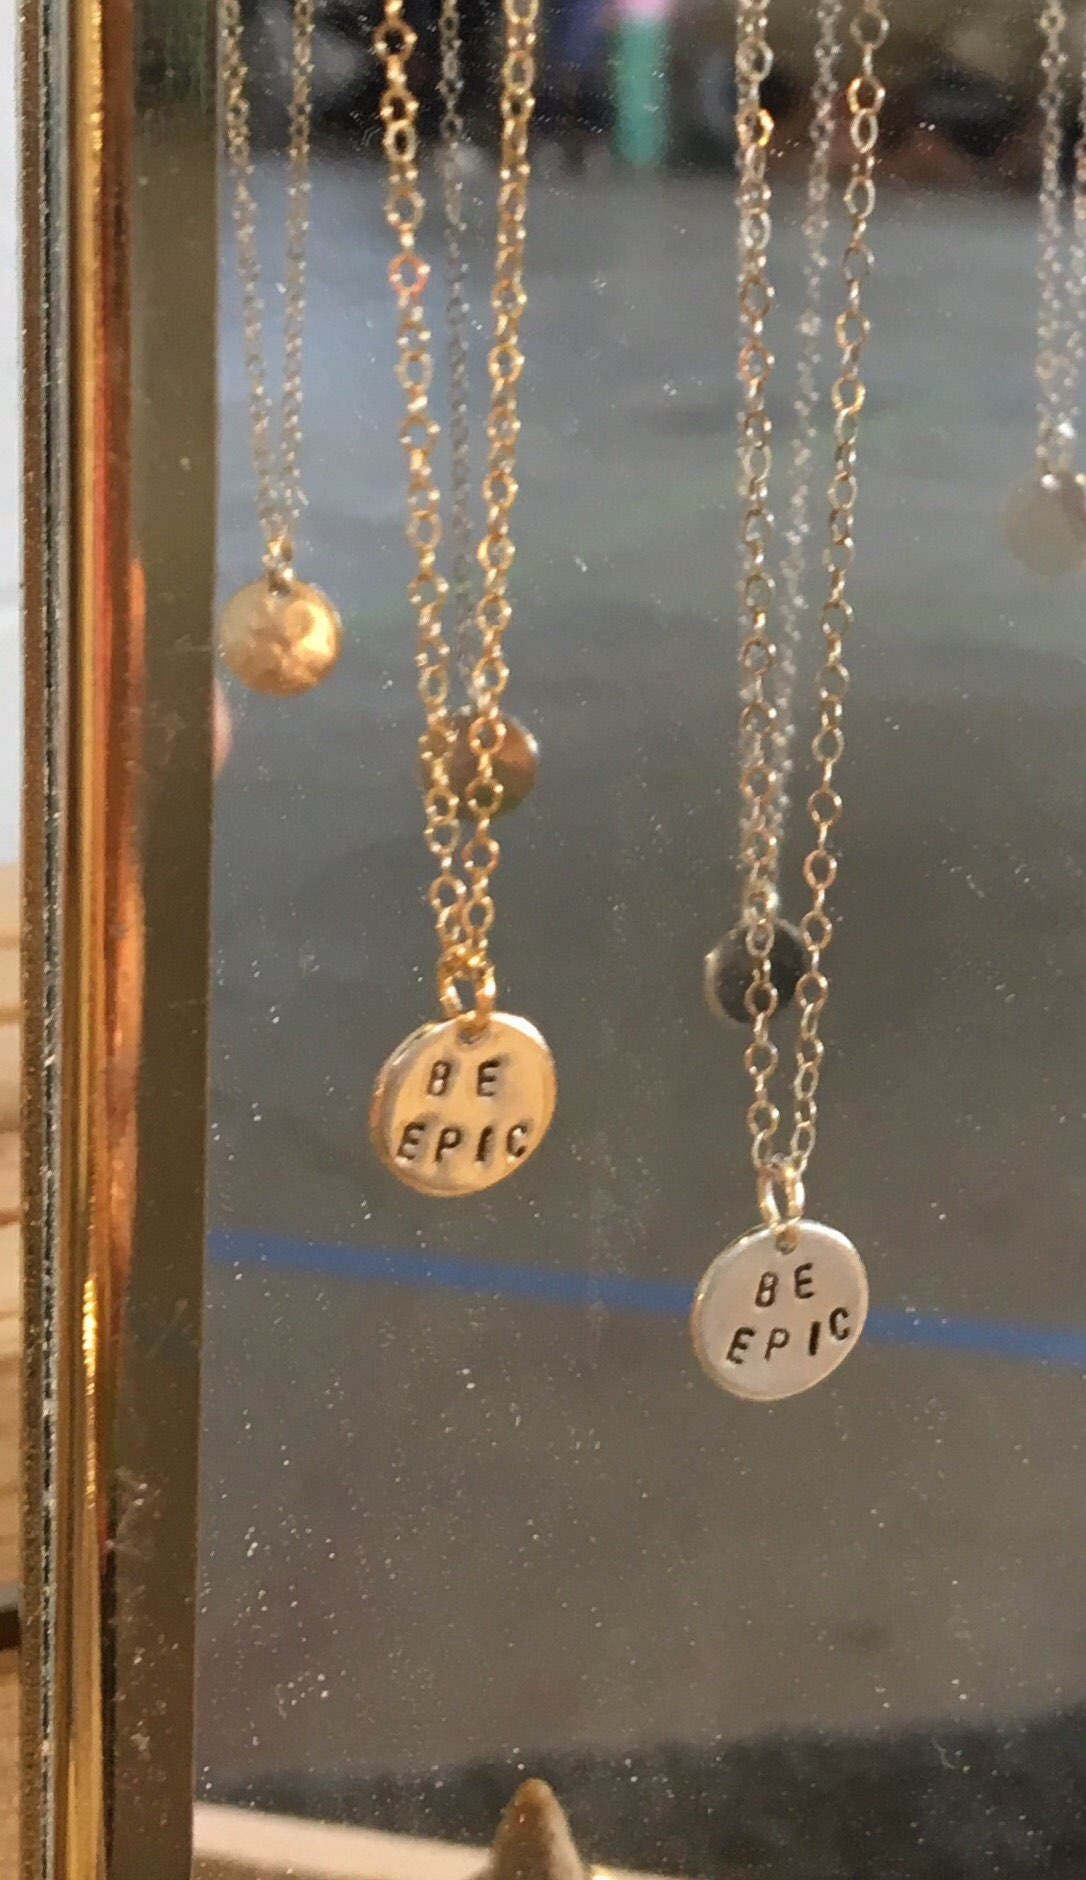 14kf BE EPIC Charm Necklace